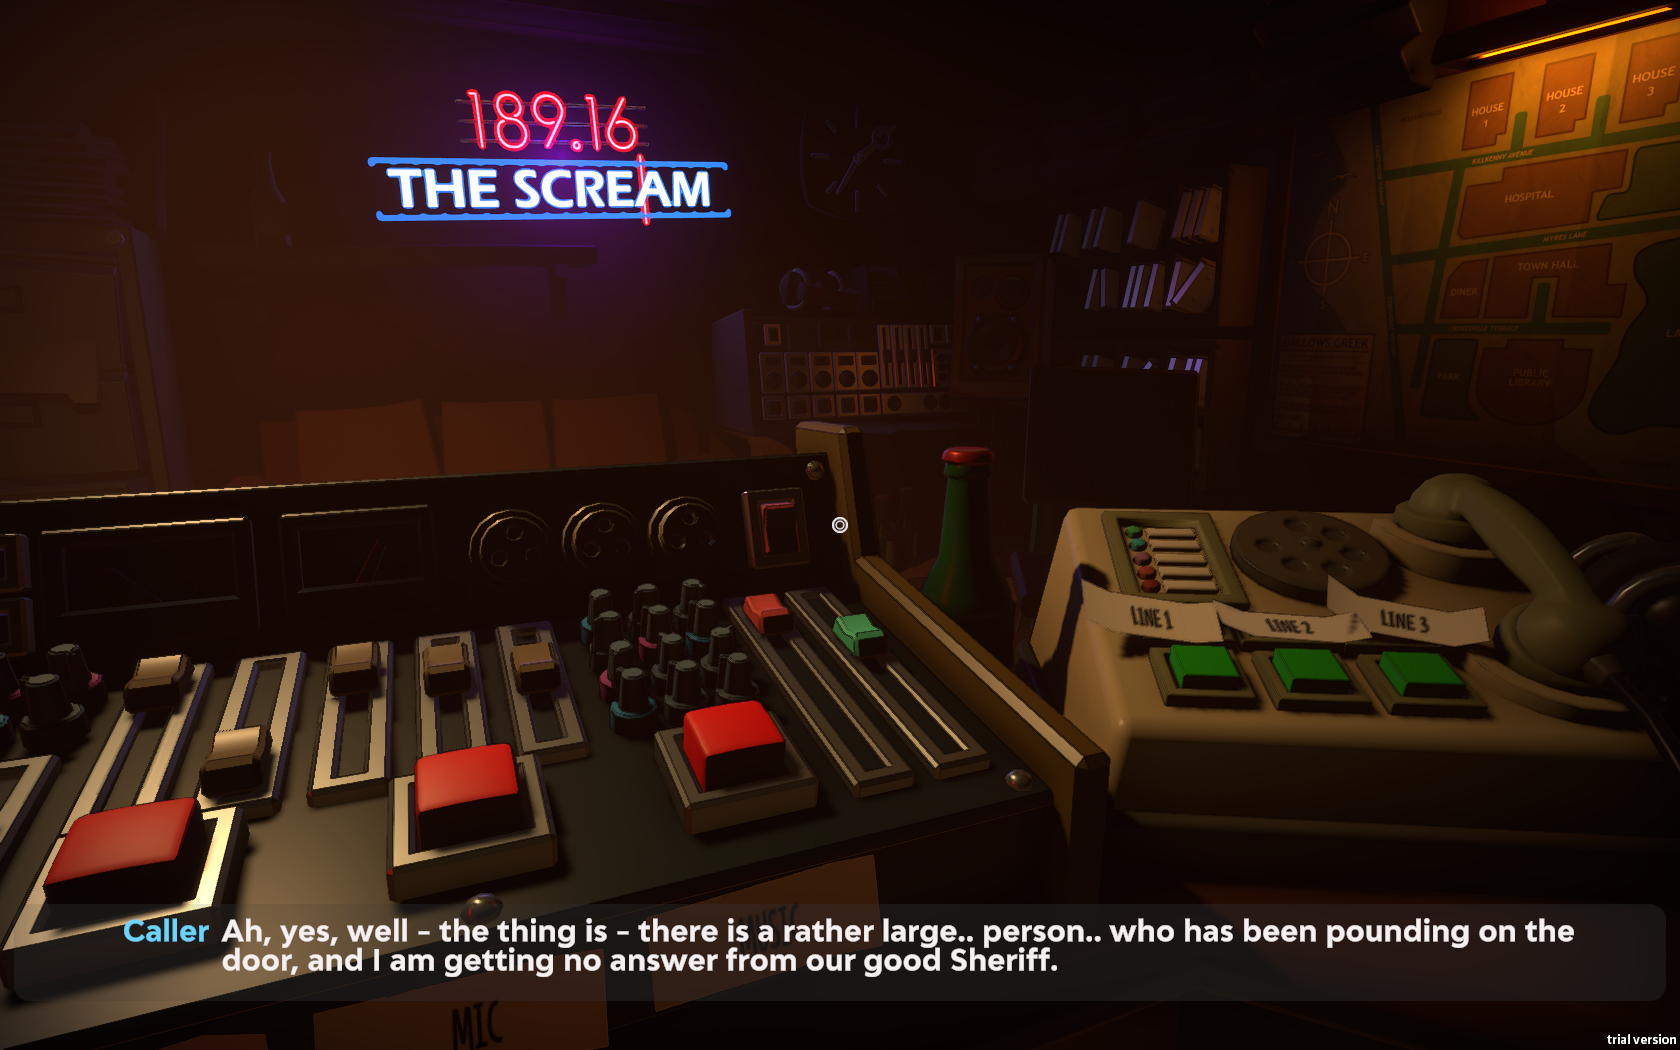 Screenshot with the view of the radio studio control panel